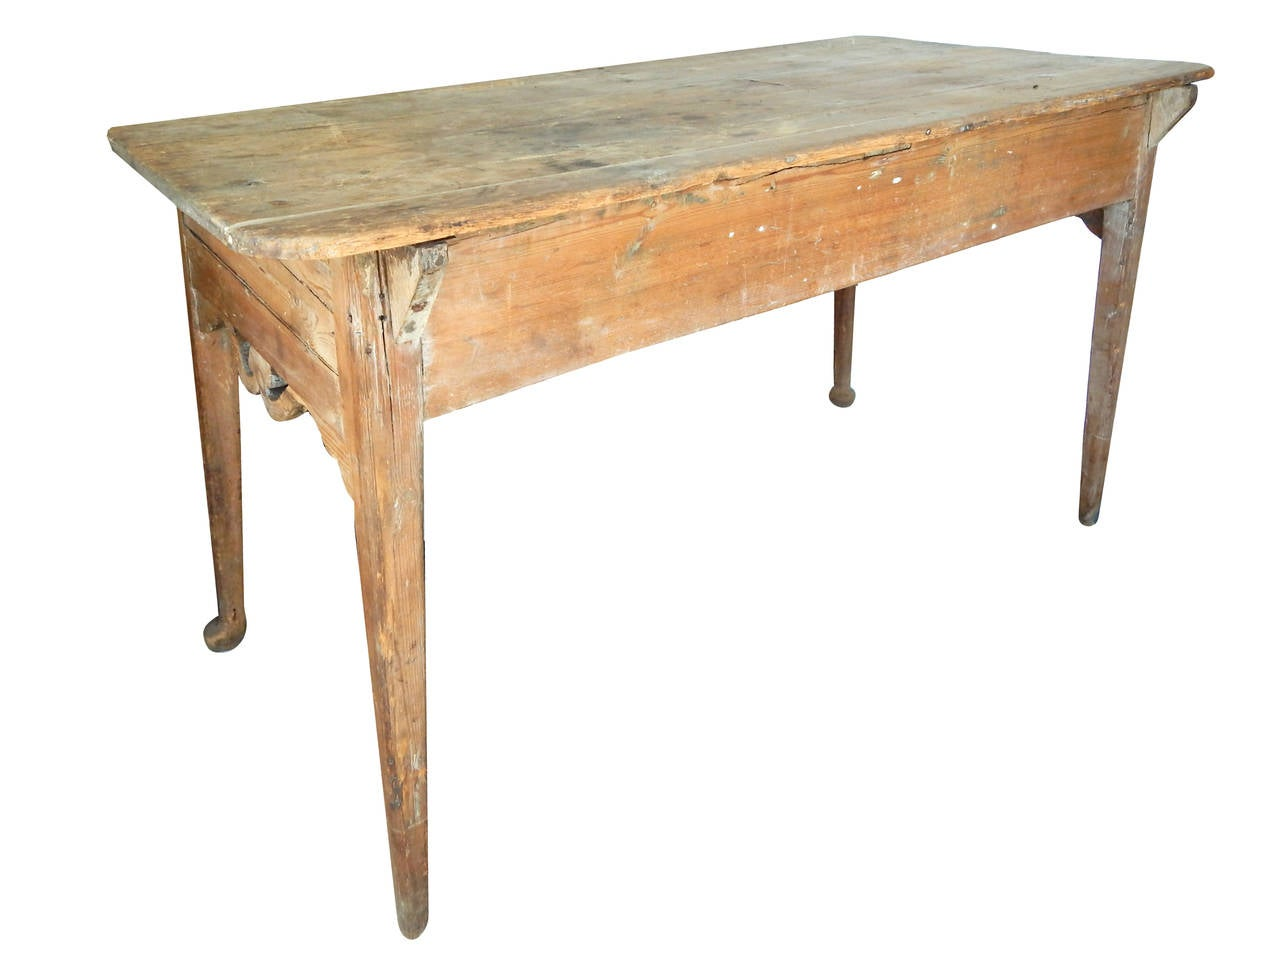 European table with scroll apron for sale at 1stdibs for Table th scroll